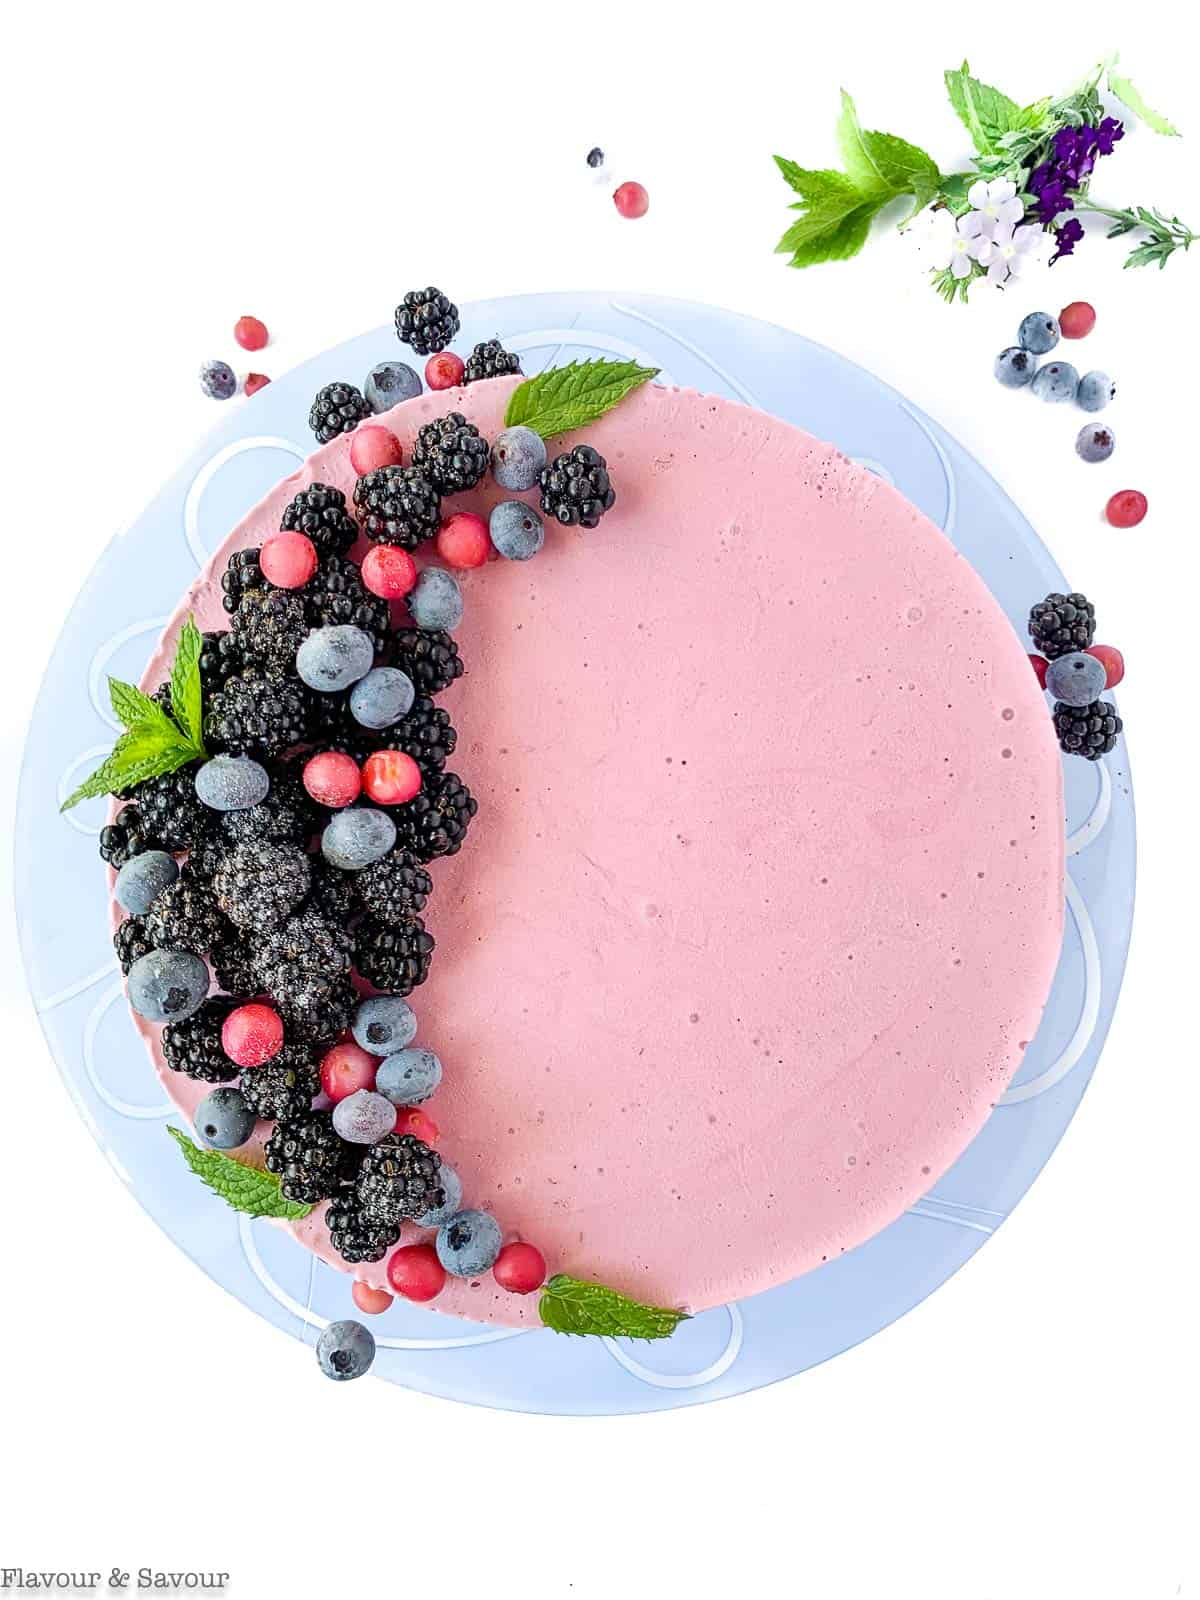 Overhead view of Blackberry Ice Cream Cheesecake decorated with blackberries and blueberries